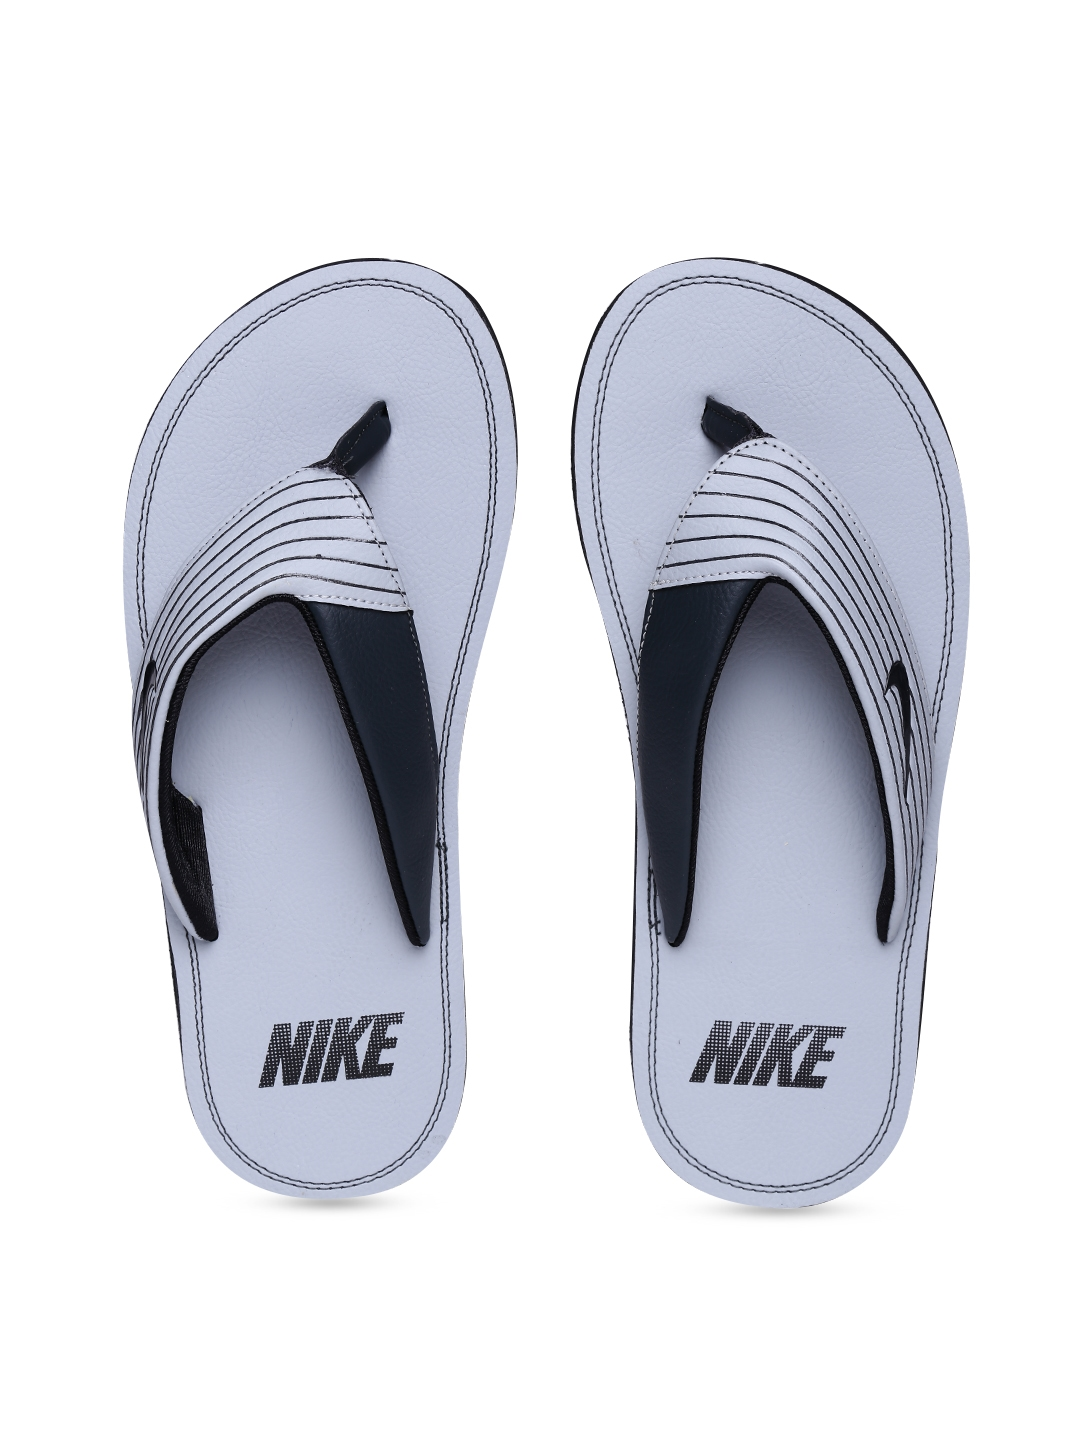 d6cec6dcd20f82 Buy Nike Men Grey Chroma Thong III Flip Flops - Flip Flops for Men ...